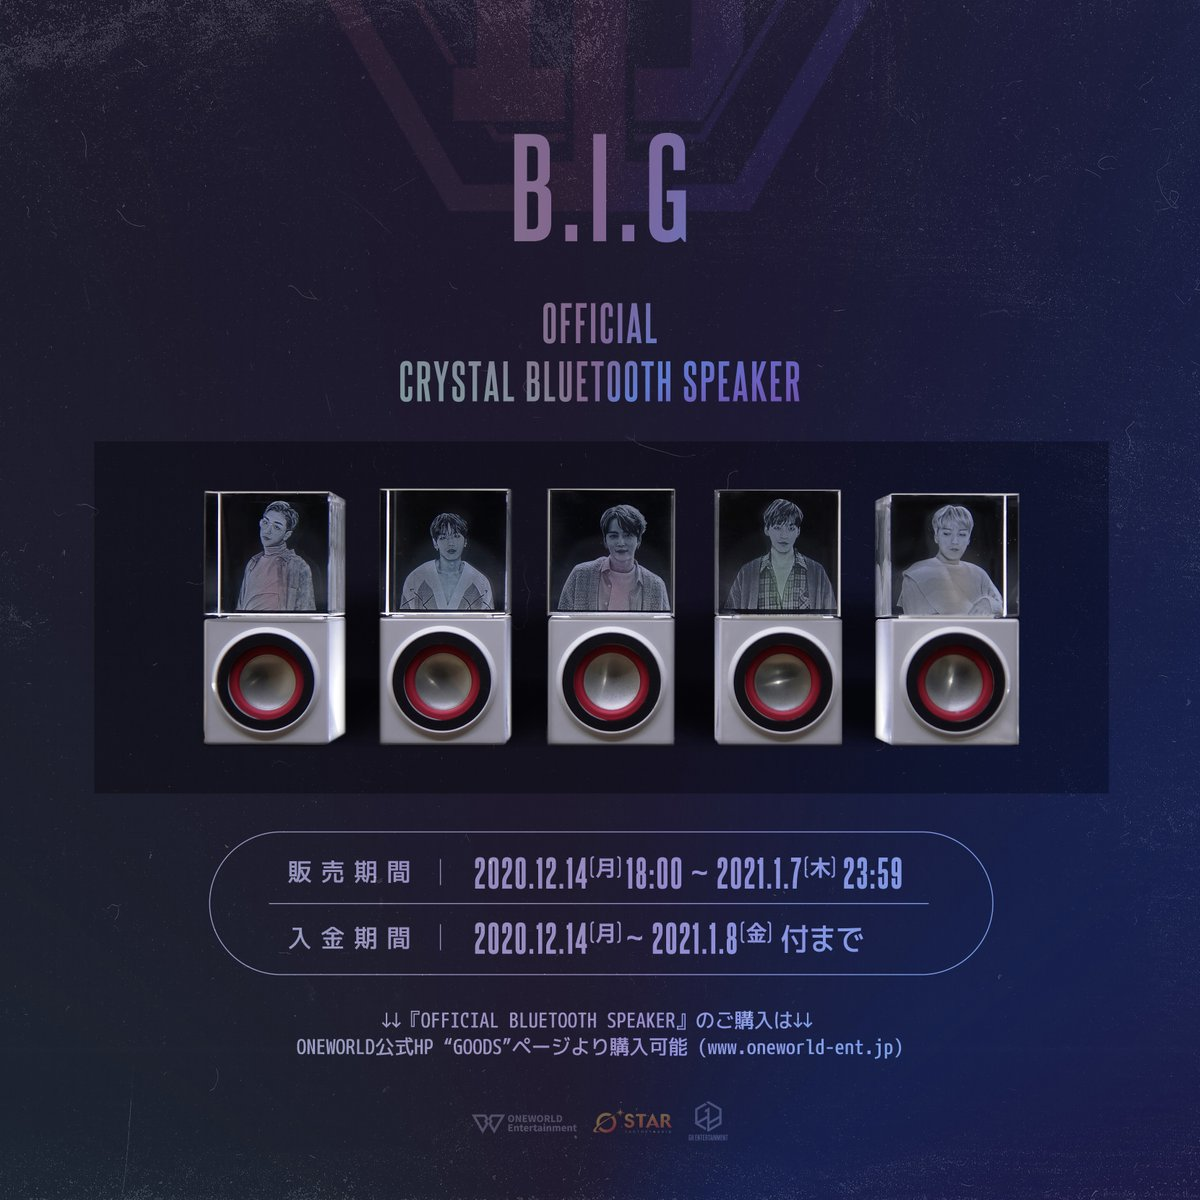 📢B.I.G『OFFICIAL CRYSTAL BLUETOOTH SPEAKER』販売決定のお知らせ‼️  🗓販売期間 : 2020年12月14日(月)18:00~2021年1月7日(木) 23:59  ✅いつも応援して下さるファンの皆様へ🤲🏻癒しの時間をお届けします🎁💕詳細は下記ホームページをご確認ください🙈❣️  🔗詳細:https://t.co/zIZApqb8Pg https://t.co/Ydc2oh2y7L